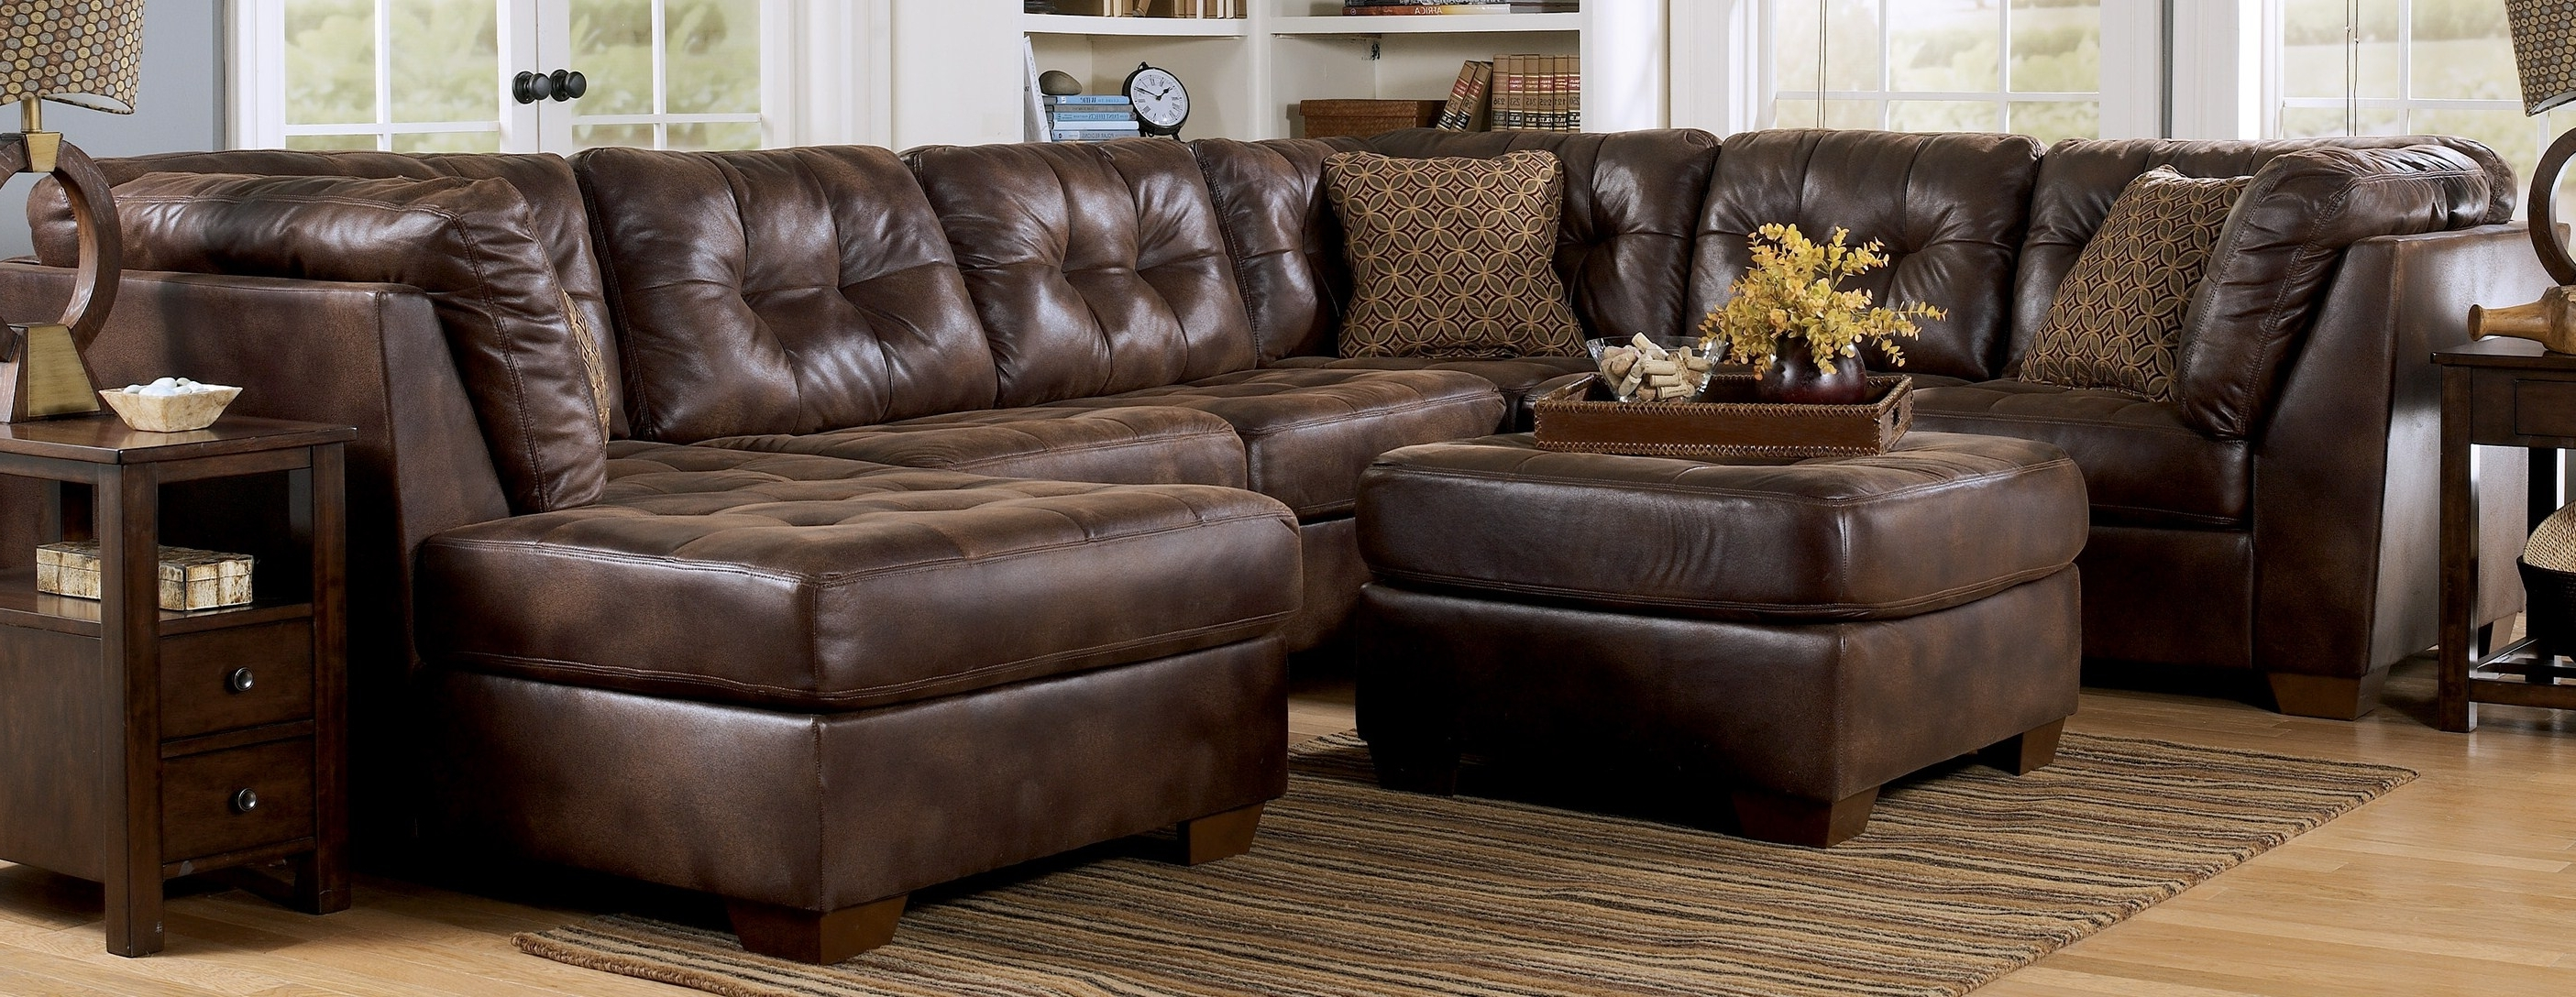 Best And Newest Luxury Leather Sectional Sleeper Sofa With Chaise 34 Contemporary For Chaise Sectional Sleepers (View 11 of 15)